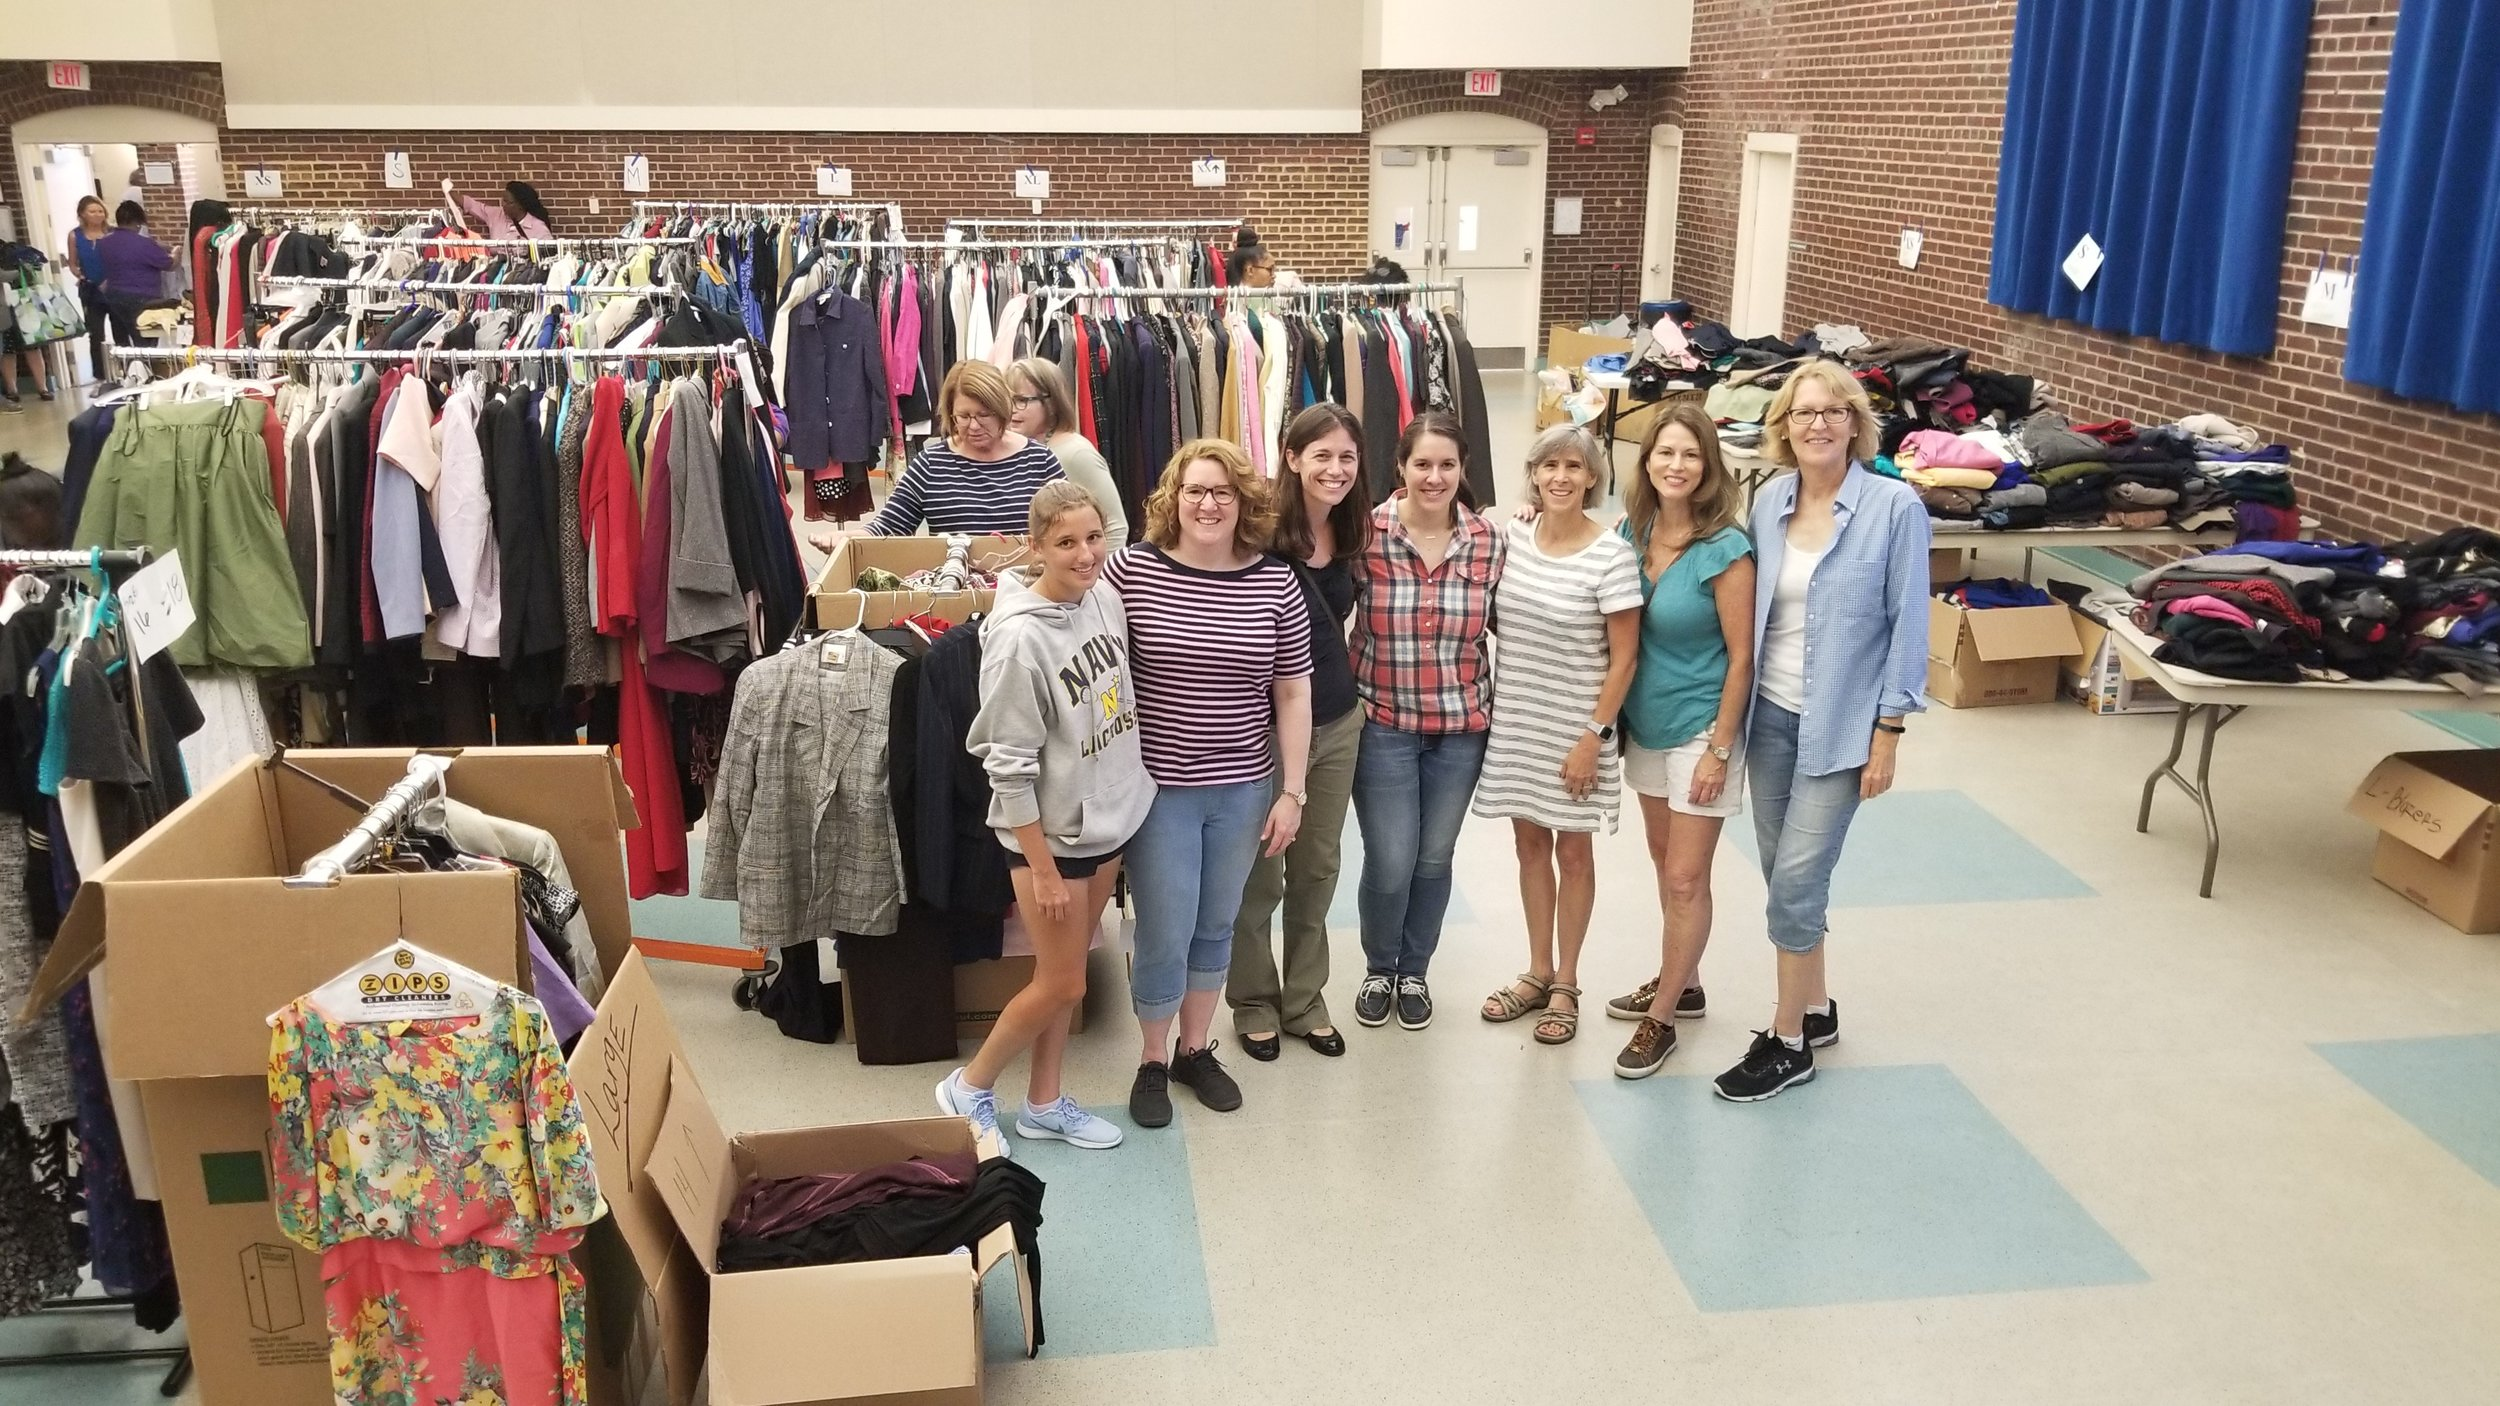 Freedom Hill Daughters volunteer at Final Salute's Next Uniform event for female veterans transitioning to civilian life. August 2019